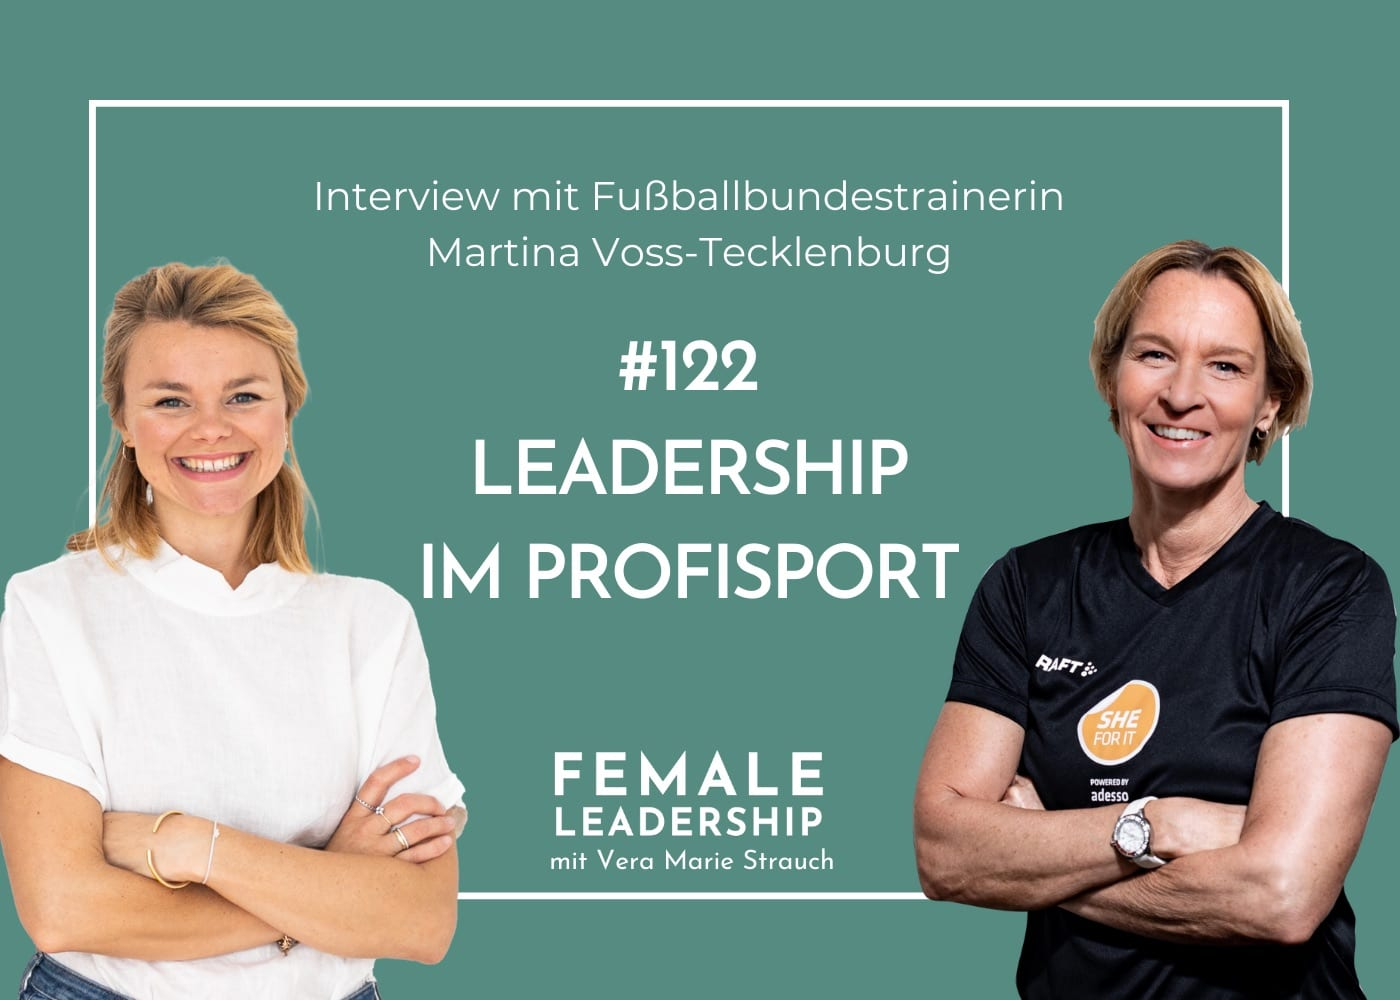 Leadership im Profisport